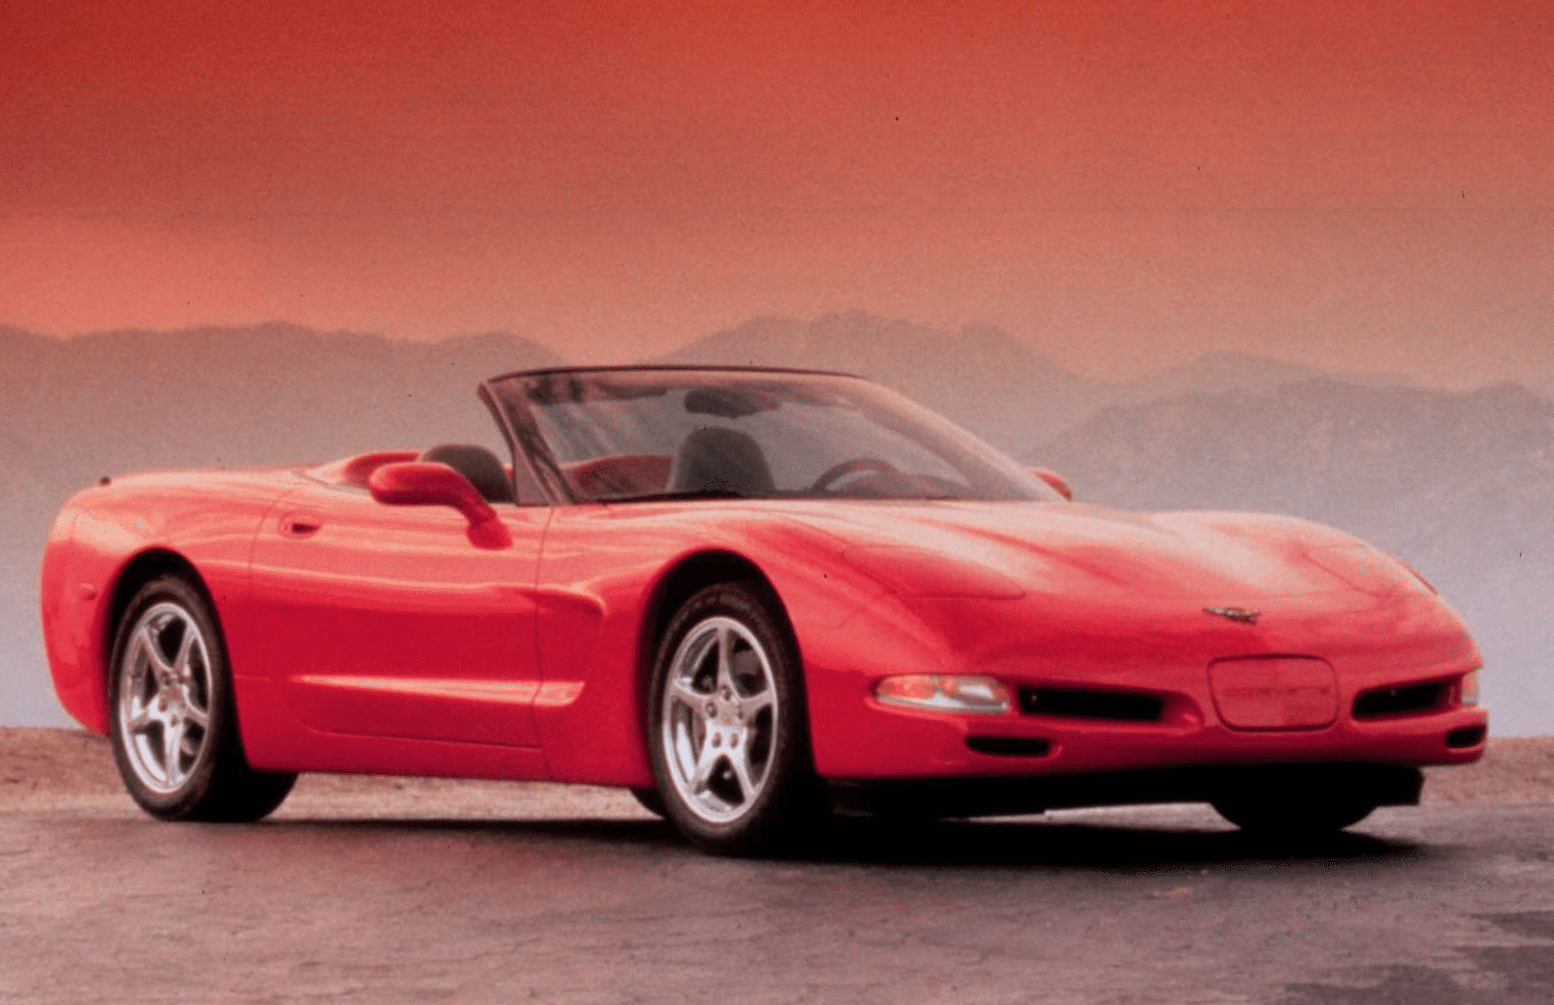 2000 Corvette Specifications. 2000 Corvette Main Specs